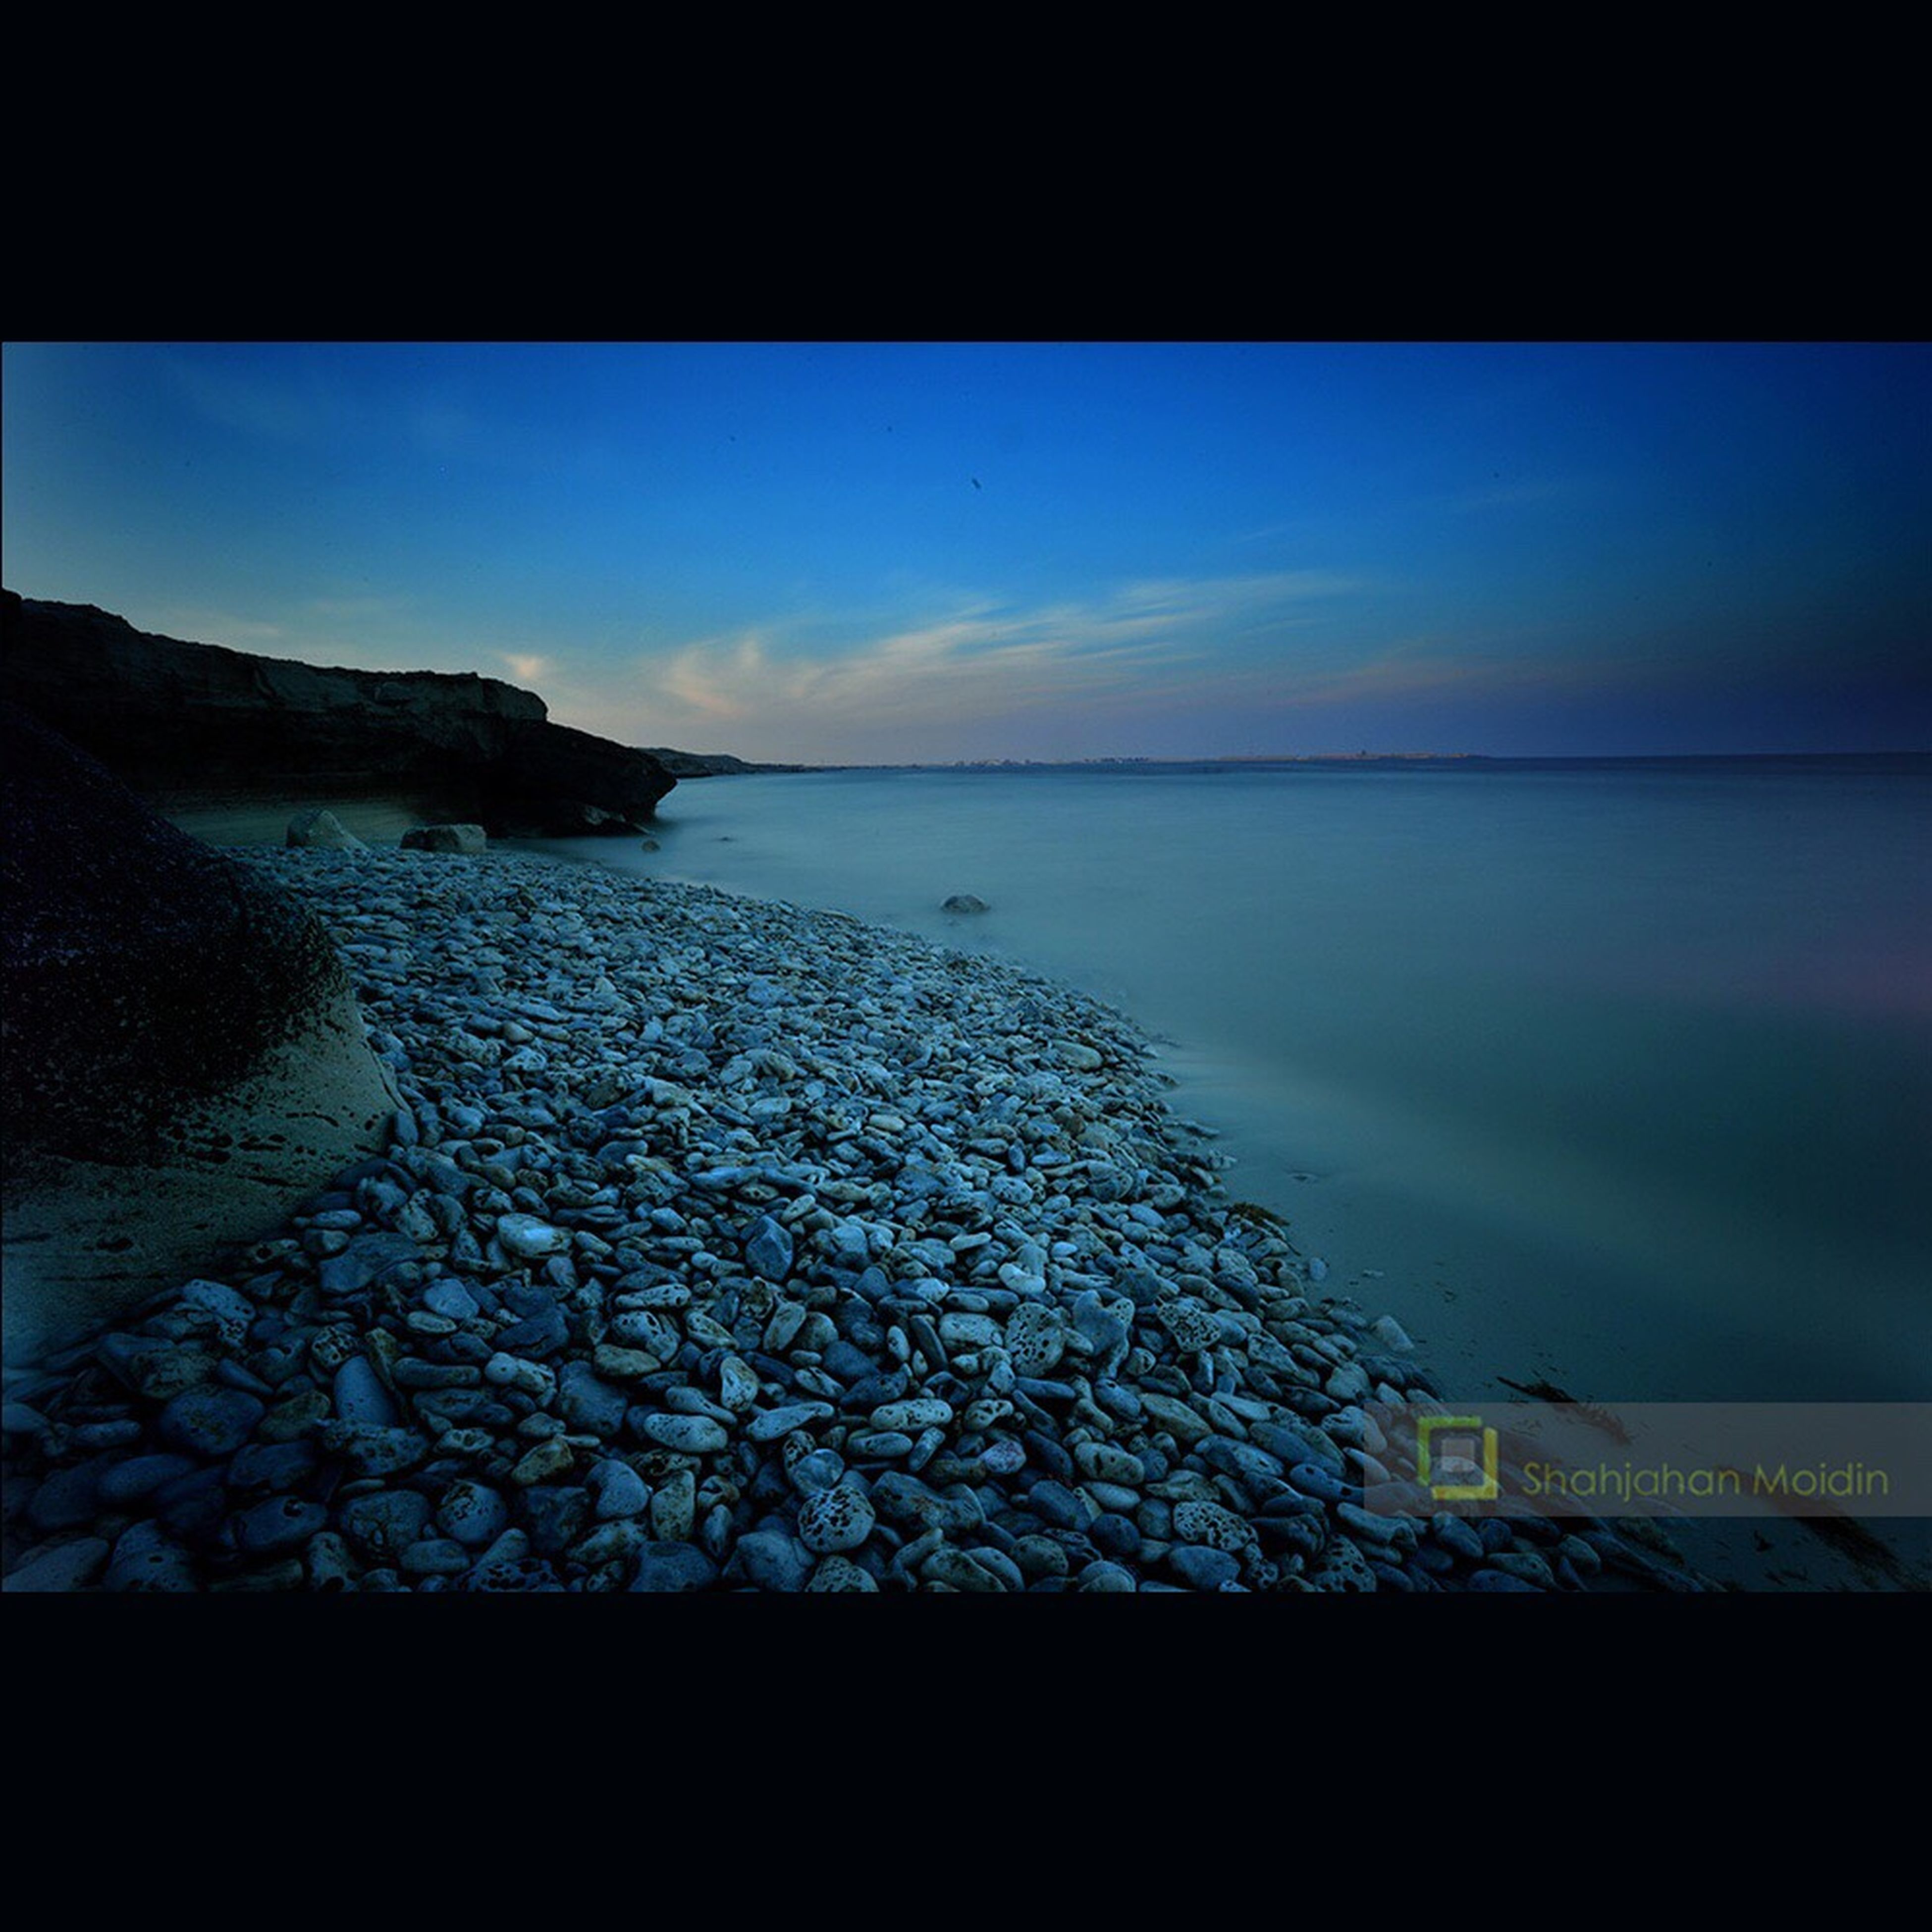 water, sea, horizon over water, sky, scenics, transfer print, tranquil scene, tranquility, beauty in nature, auto post production filter, nature, beach, shore, cloud - sky, idyllic, reflection, coastline, outdoors, ocean, no people